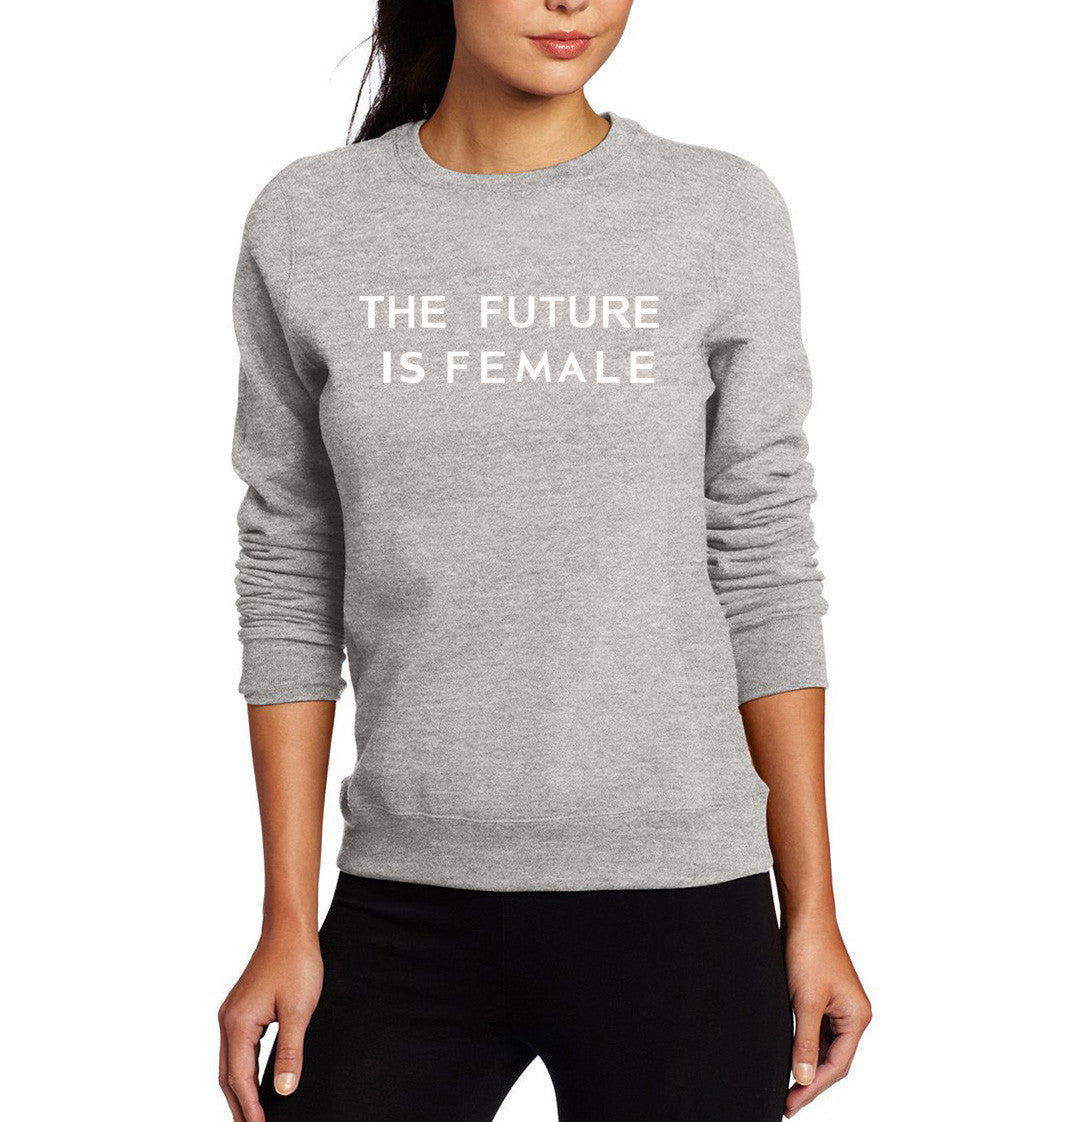 The Future Is Female Sweatshirt for Feminists